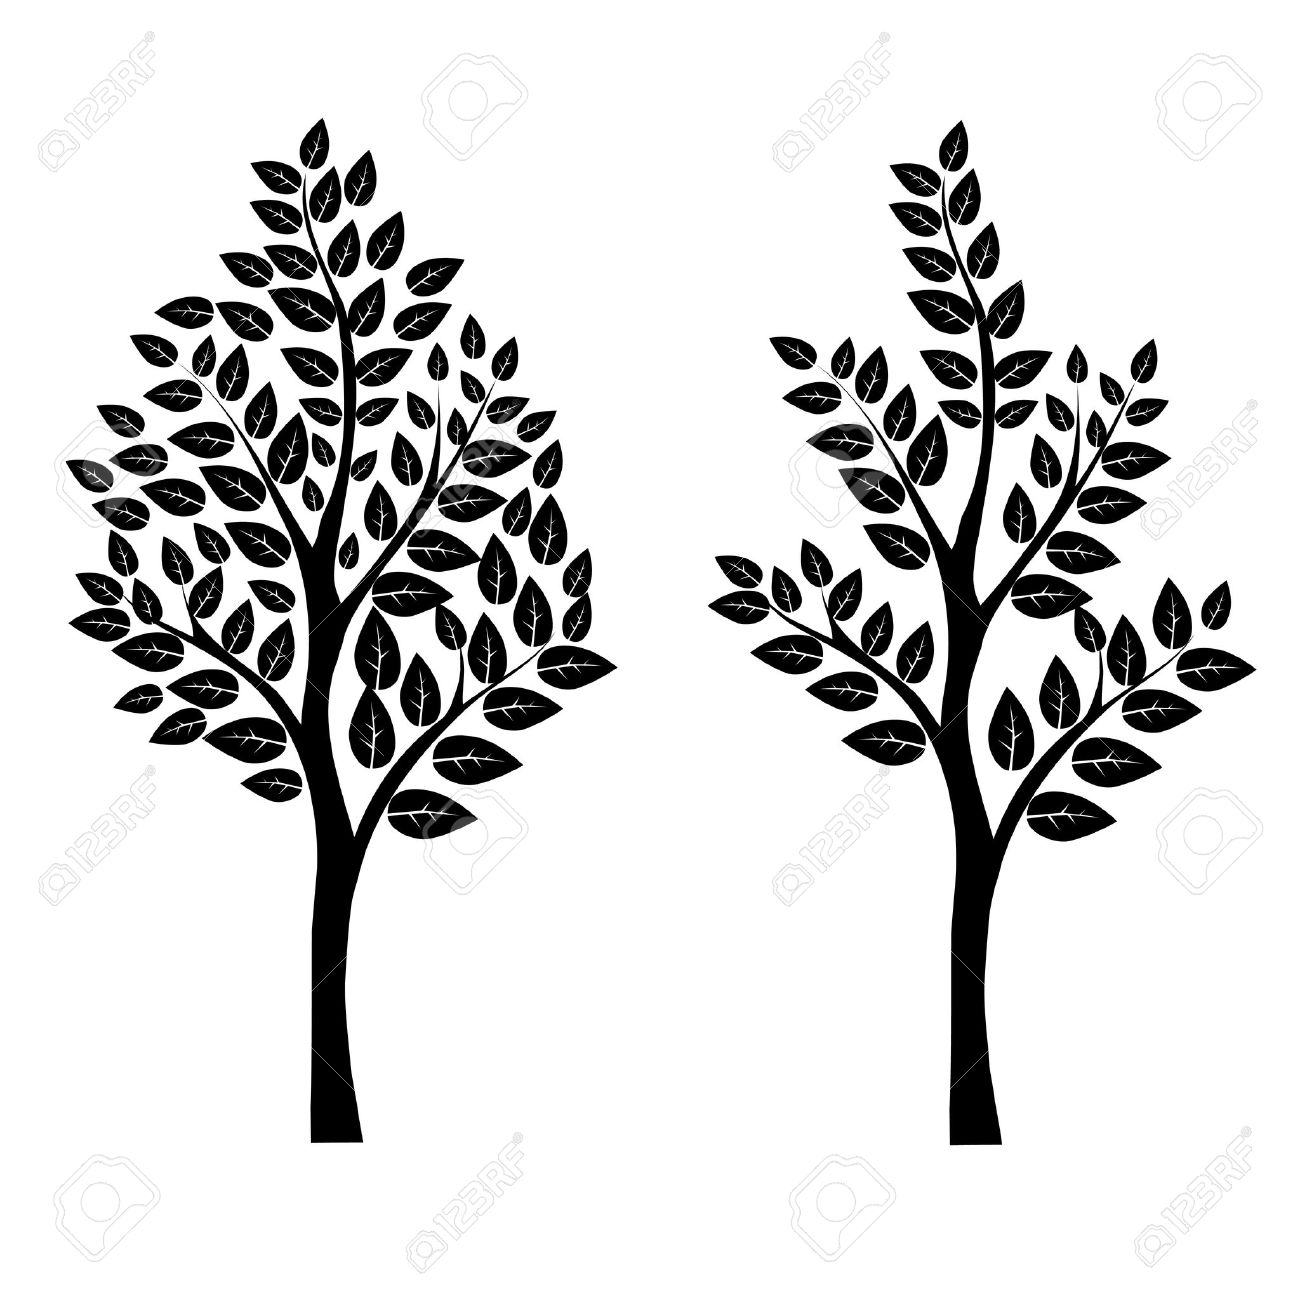 black tree vector art eps 10 royalty free cliparts vectors and rh 123rf com tree vector free tree vector free